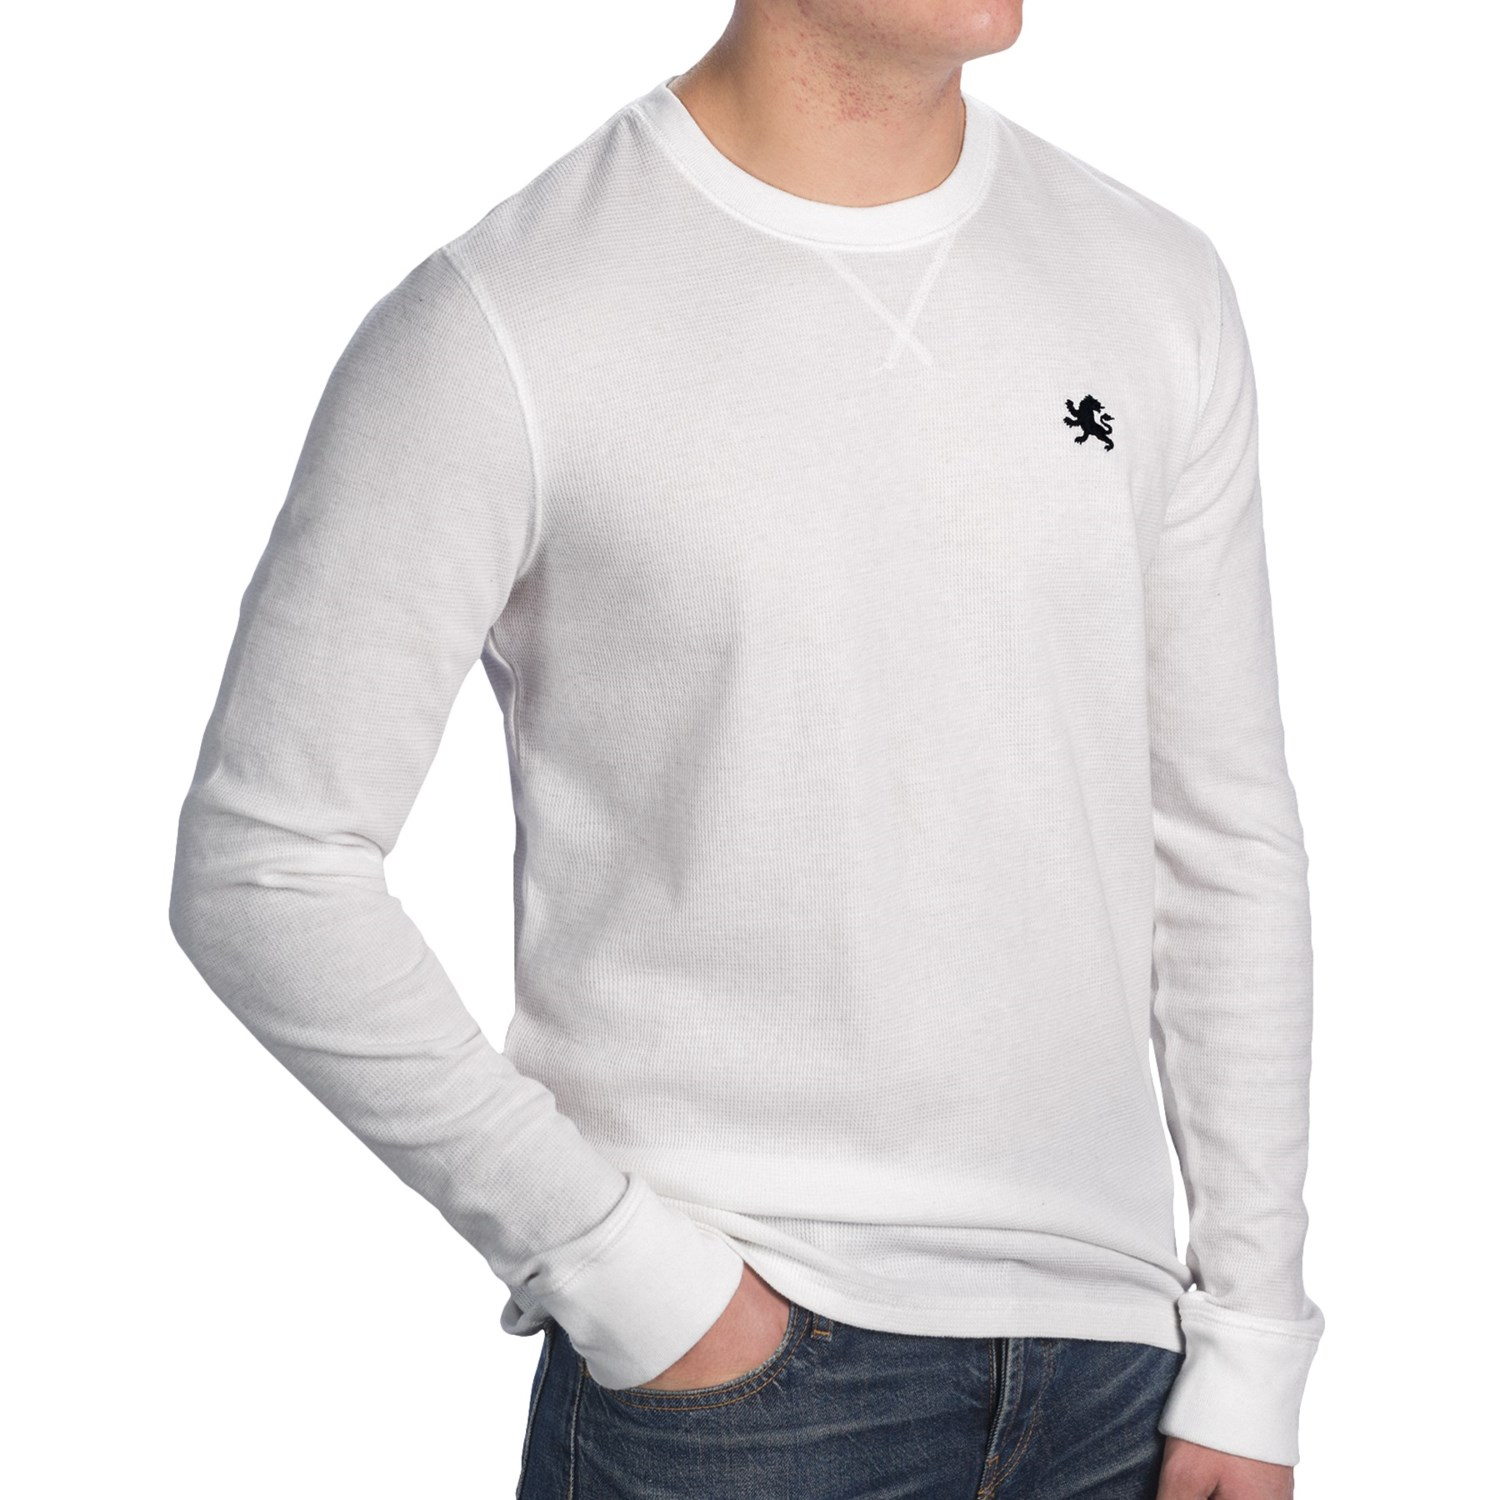 Thermal crew neck t shirt for men save 62 for White thermal t shirt